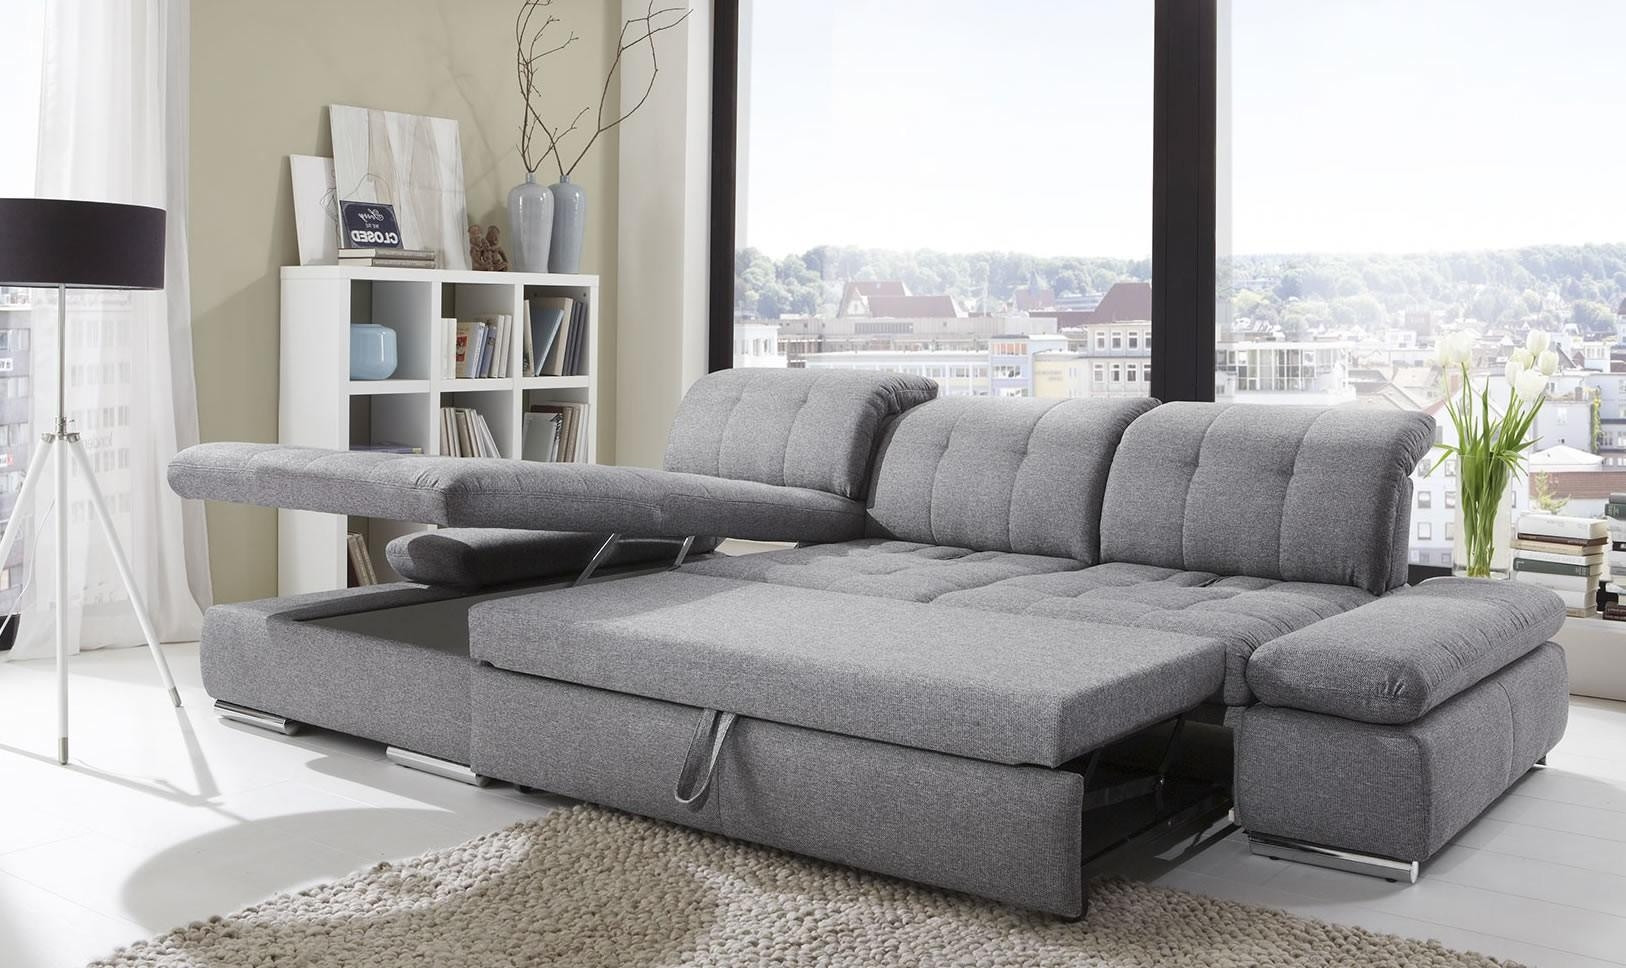 Best ideas about Sofa Sleeper Sectional . Save or Pin 20 Top Sectional Sleeper Sofas With Chaise Now.